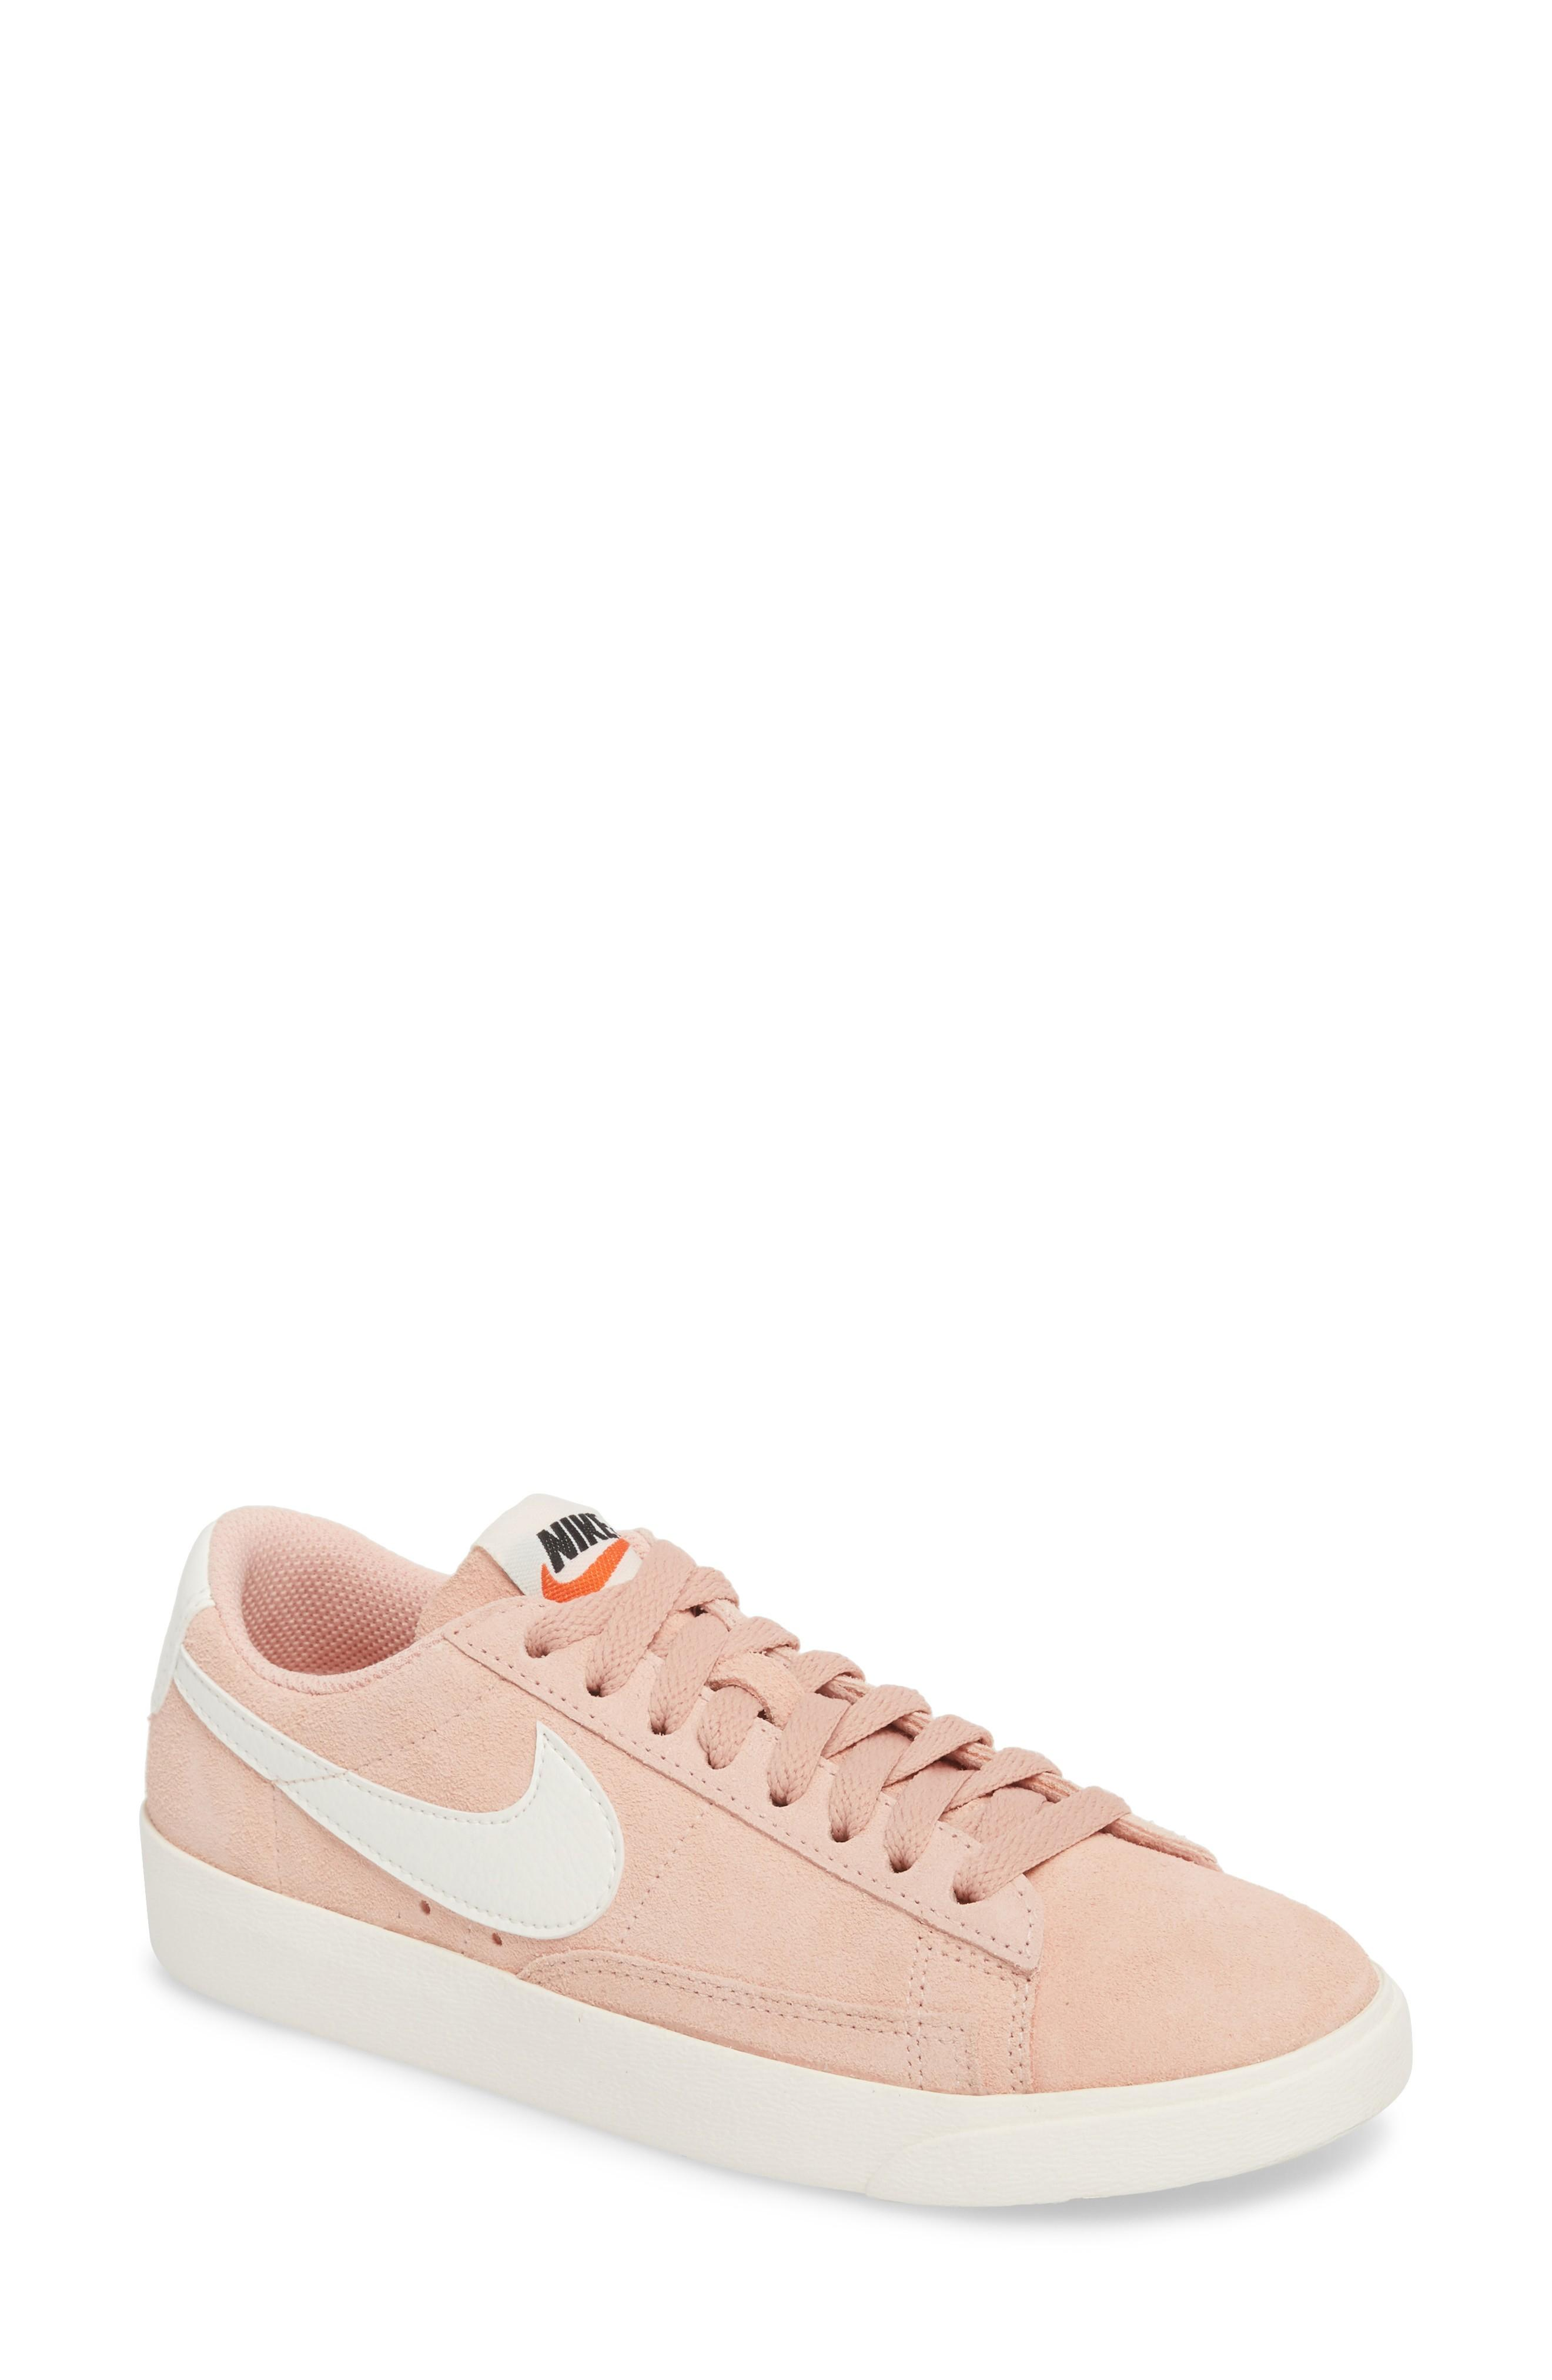 save off 82061 a796c Nike Blazer Low Sneaker In Coral Stardust  Sail